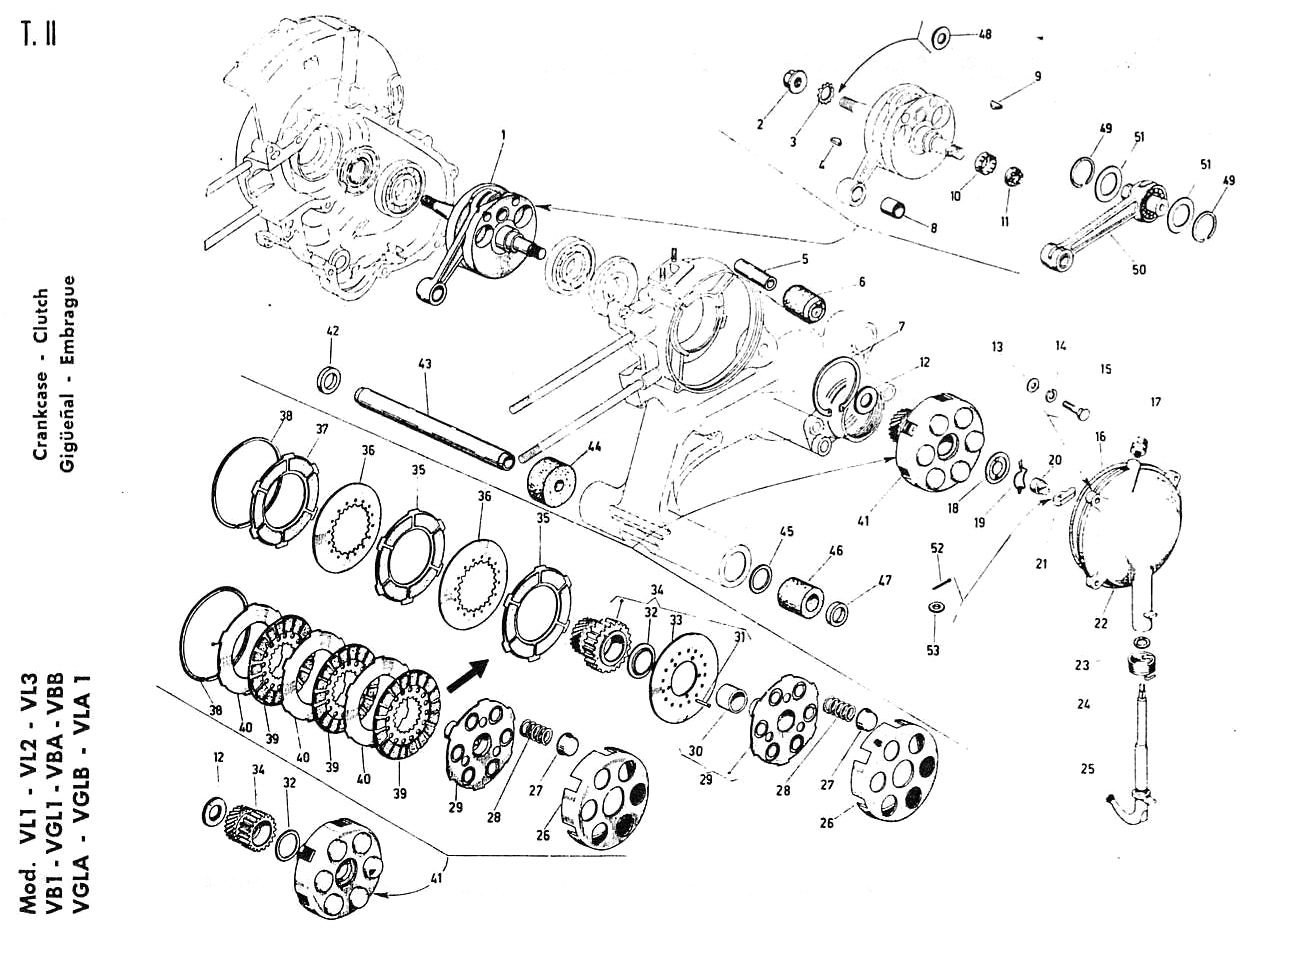 small resolution of vespa parts diagram wiring diagram for you scooter battery wire diagram vespa engine diagram free wiring